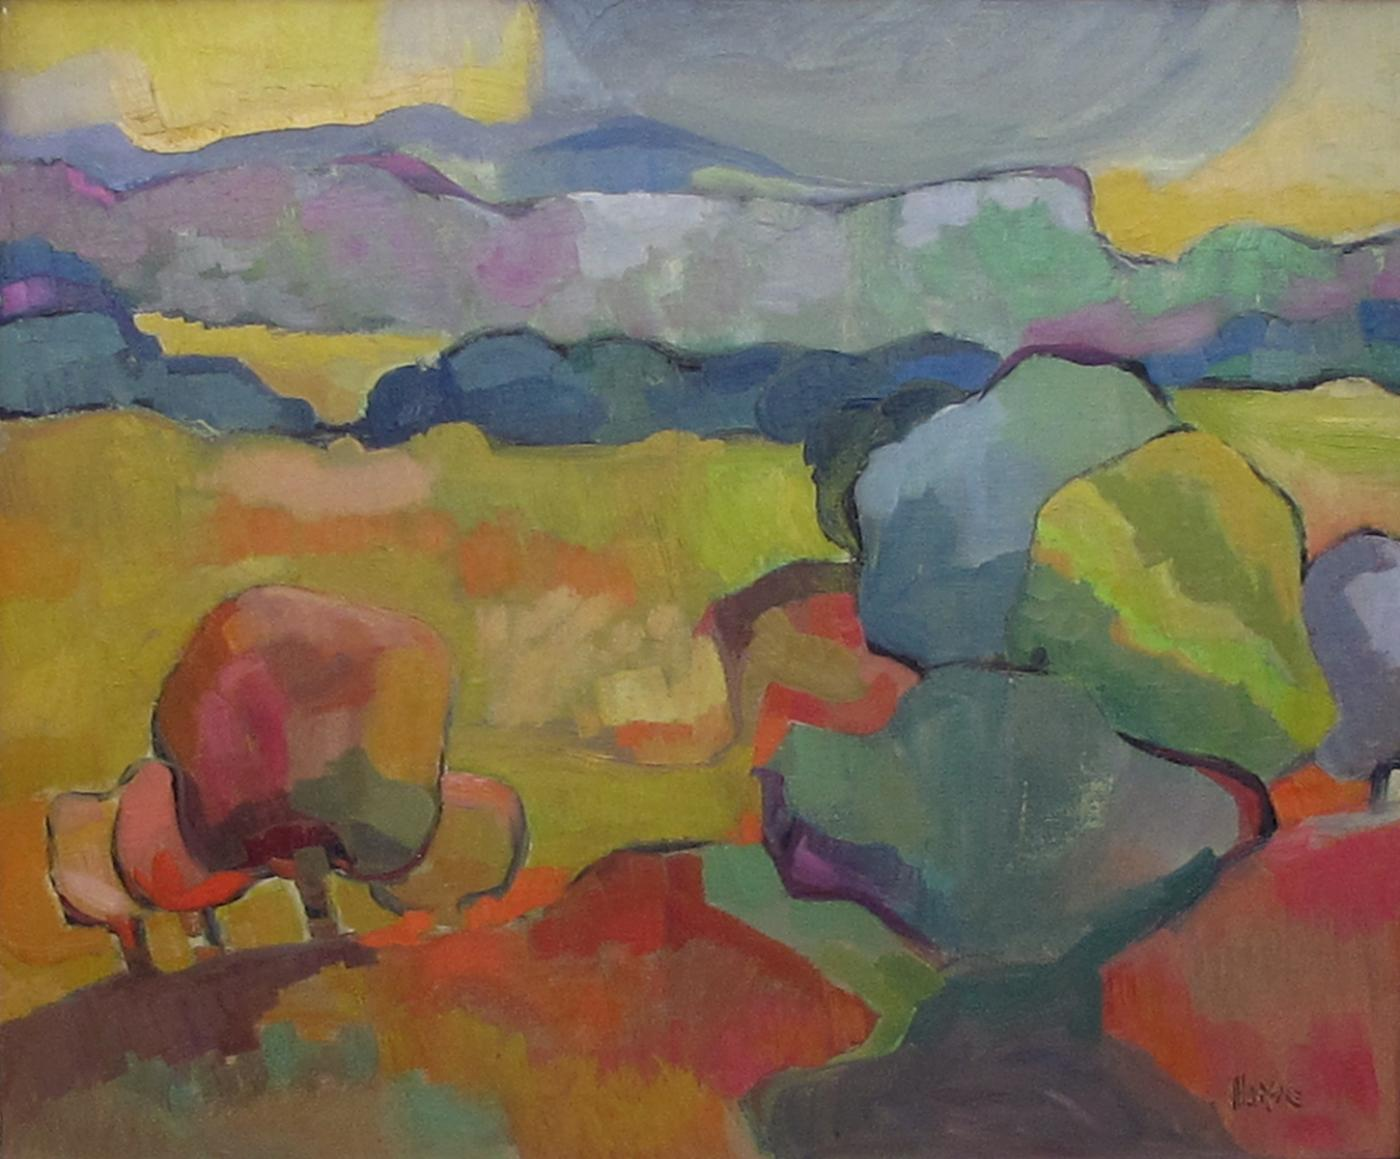 Vibrant American Mid Century Abstract Landscape Painting Signed Marse